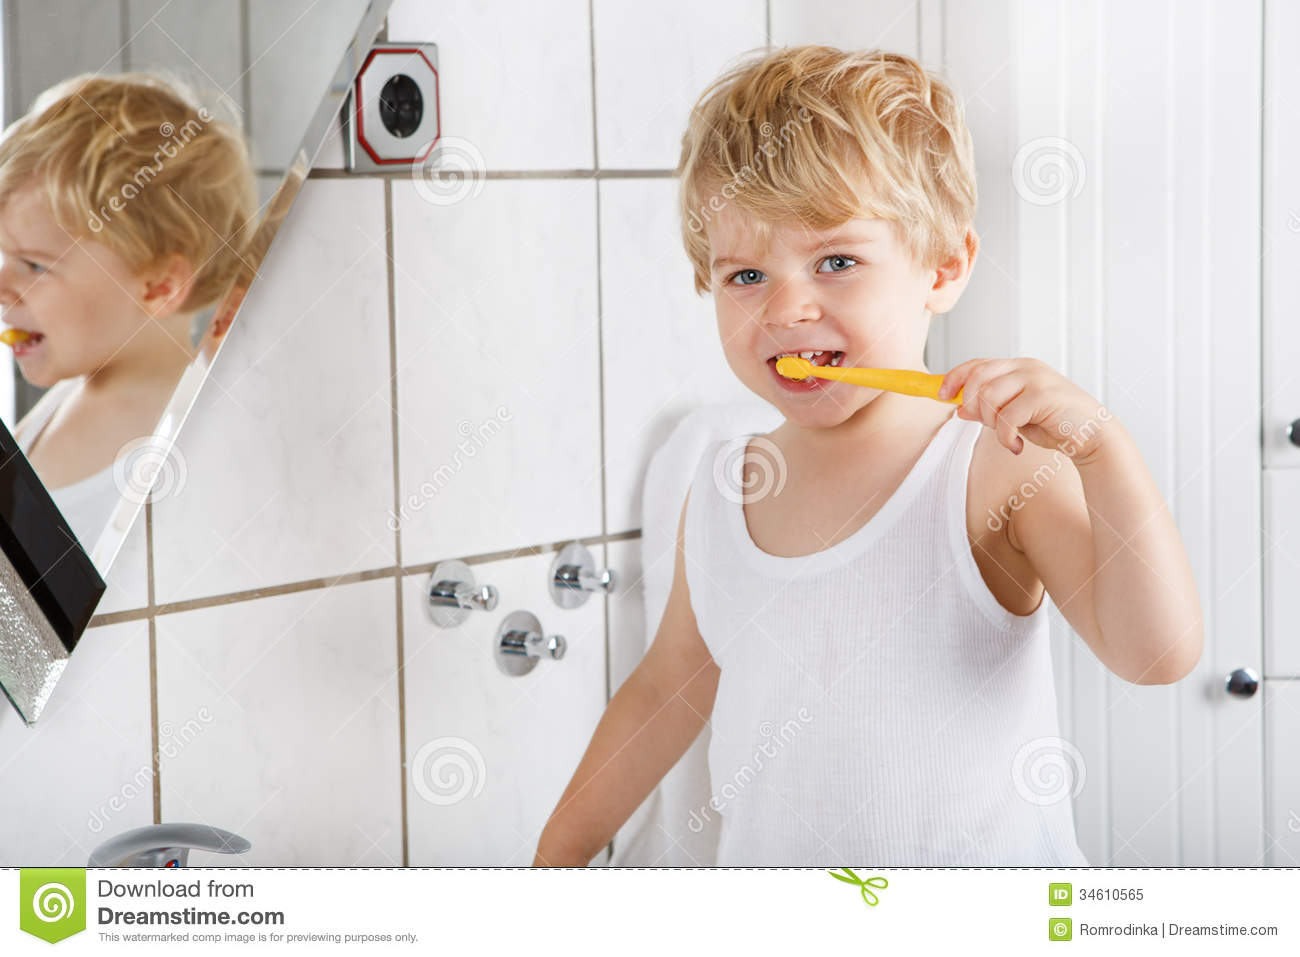 Cute Toddler With Blue Eyes And Blond Hair Brushing His